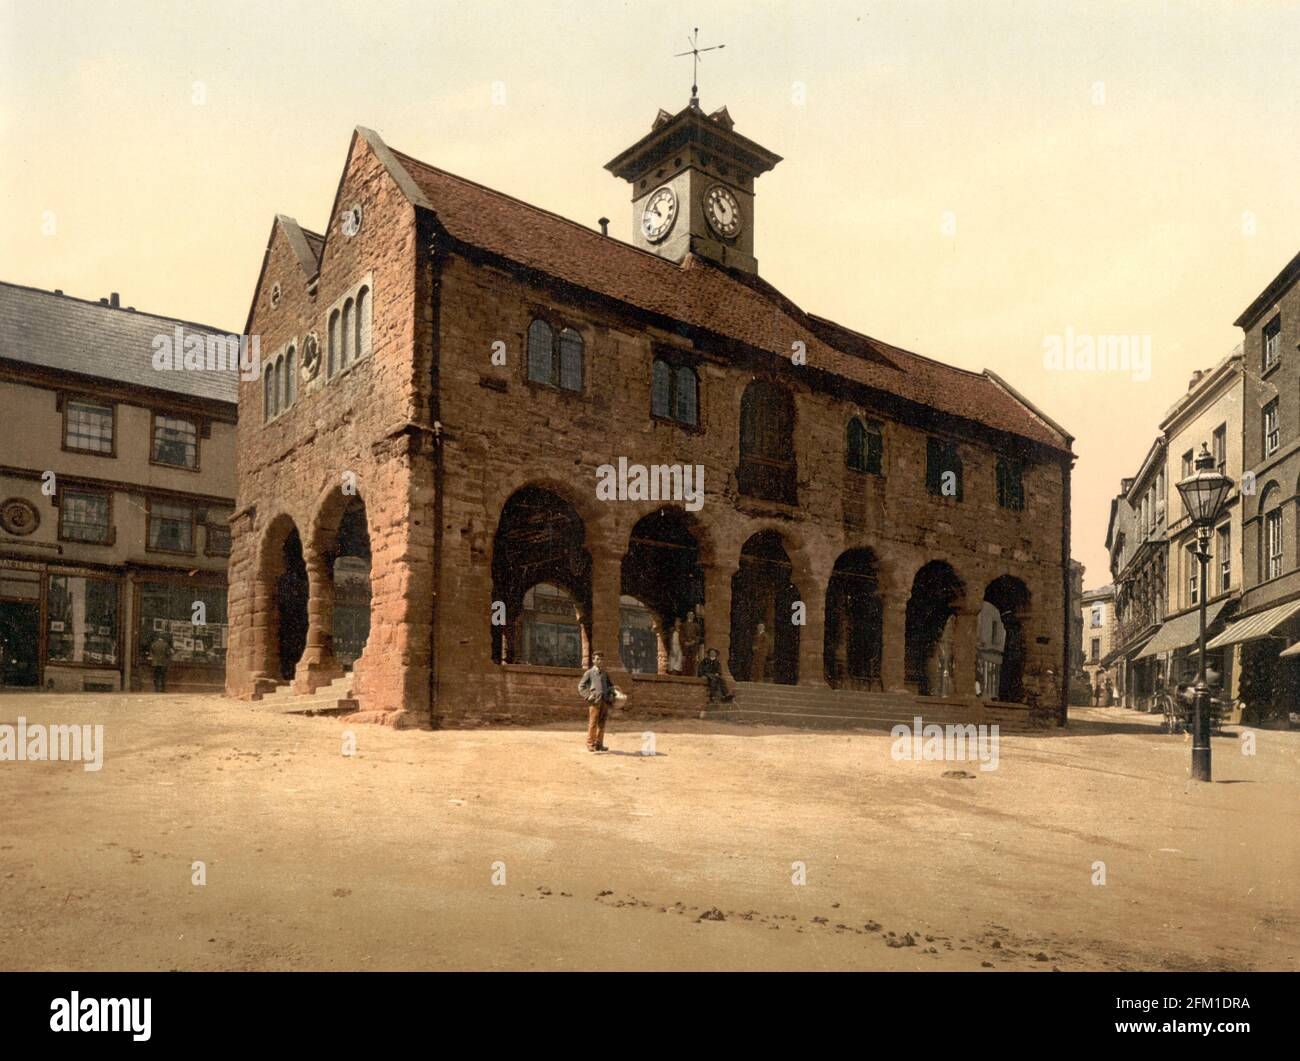 The Market House, Ross-on-Wye, Herefordshire, vers 1890-1900 Banque D'Images